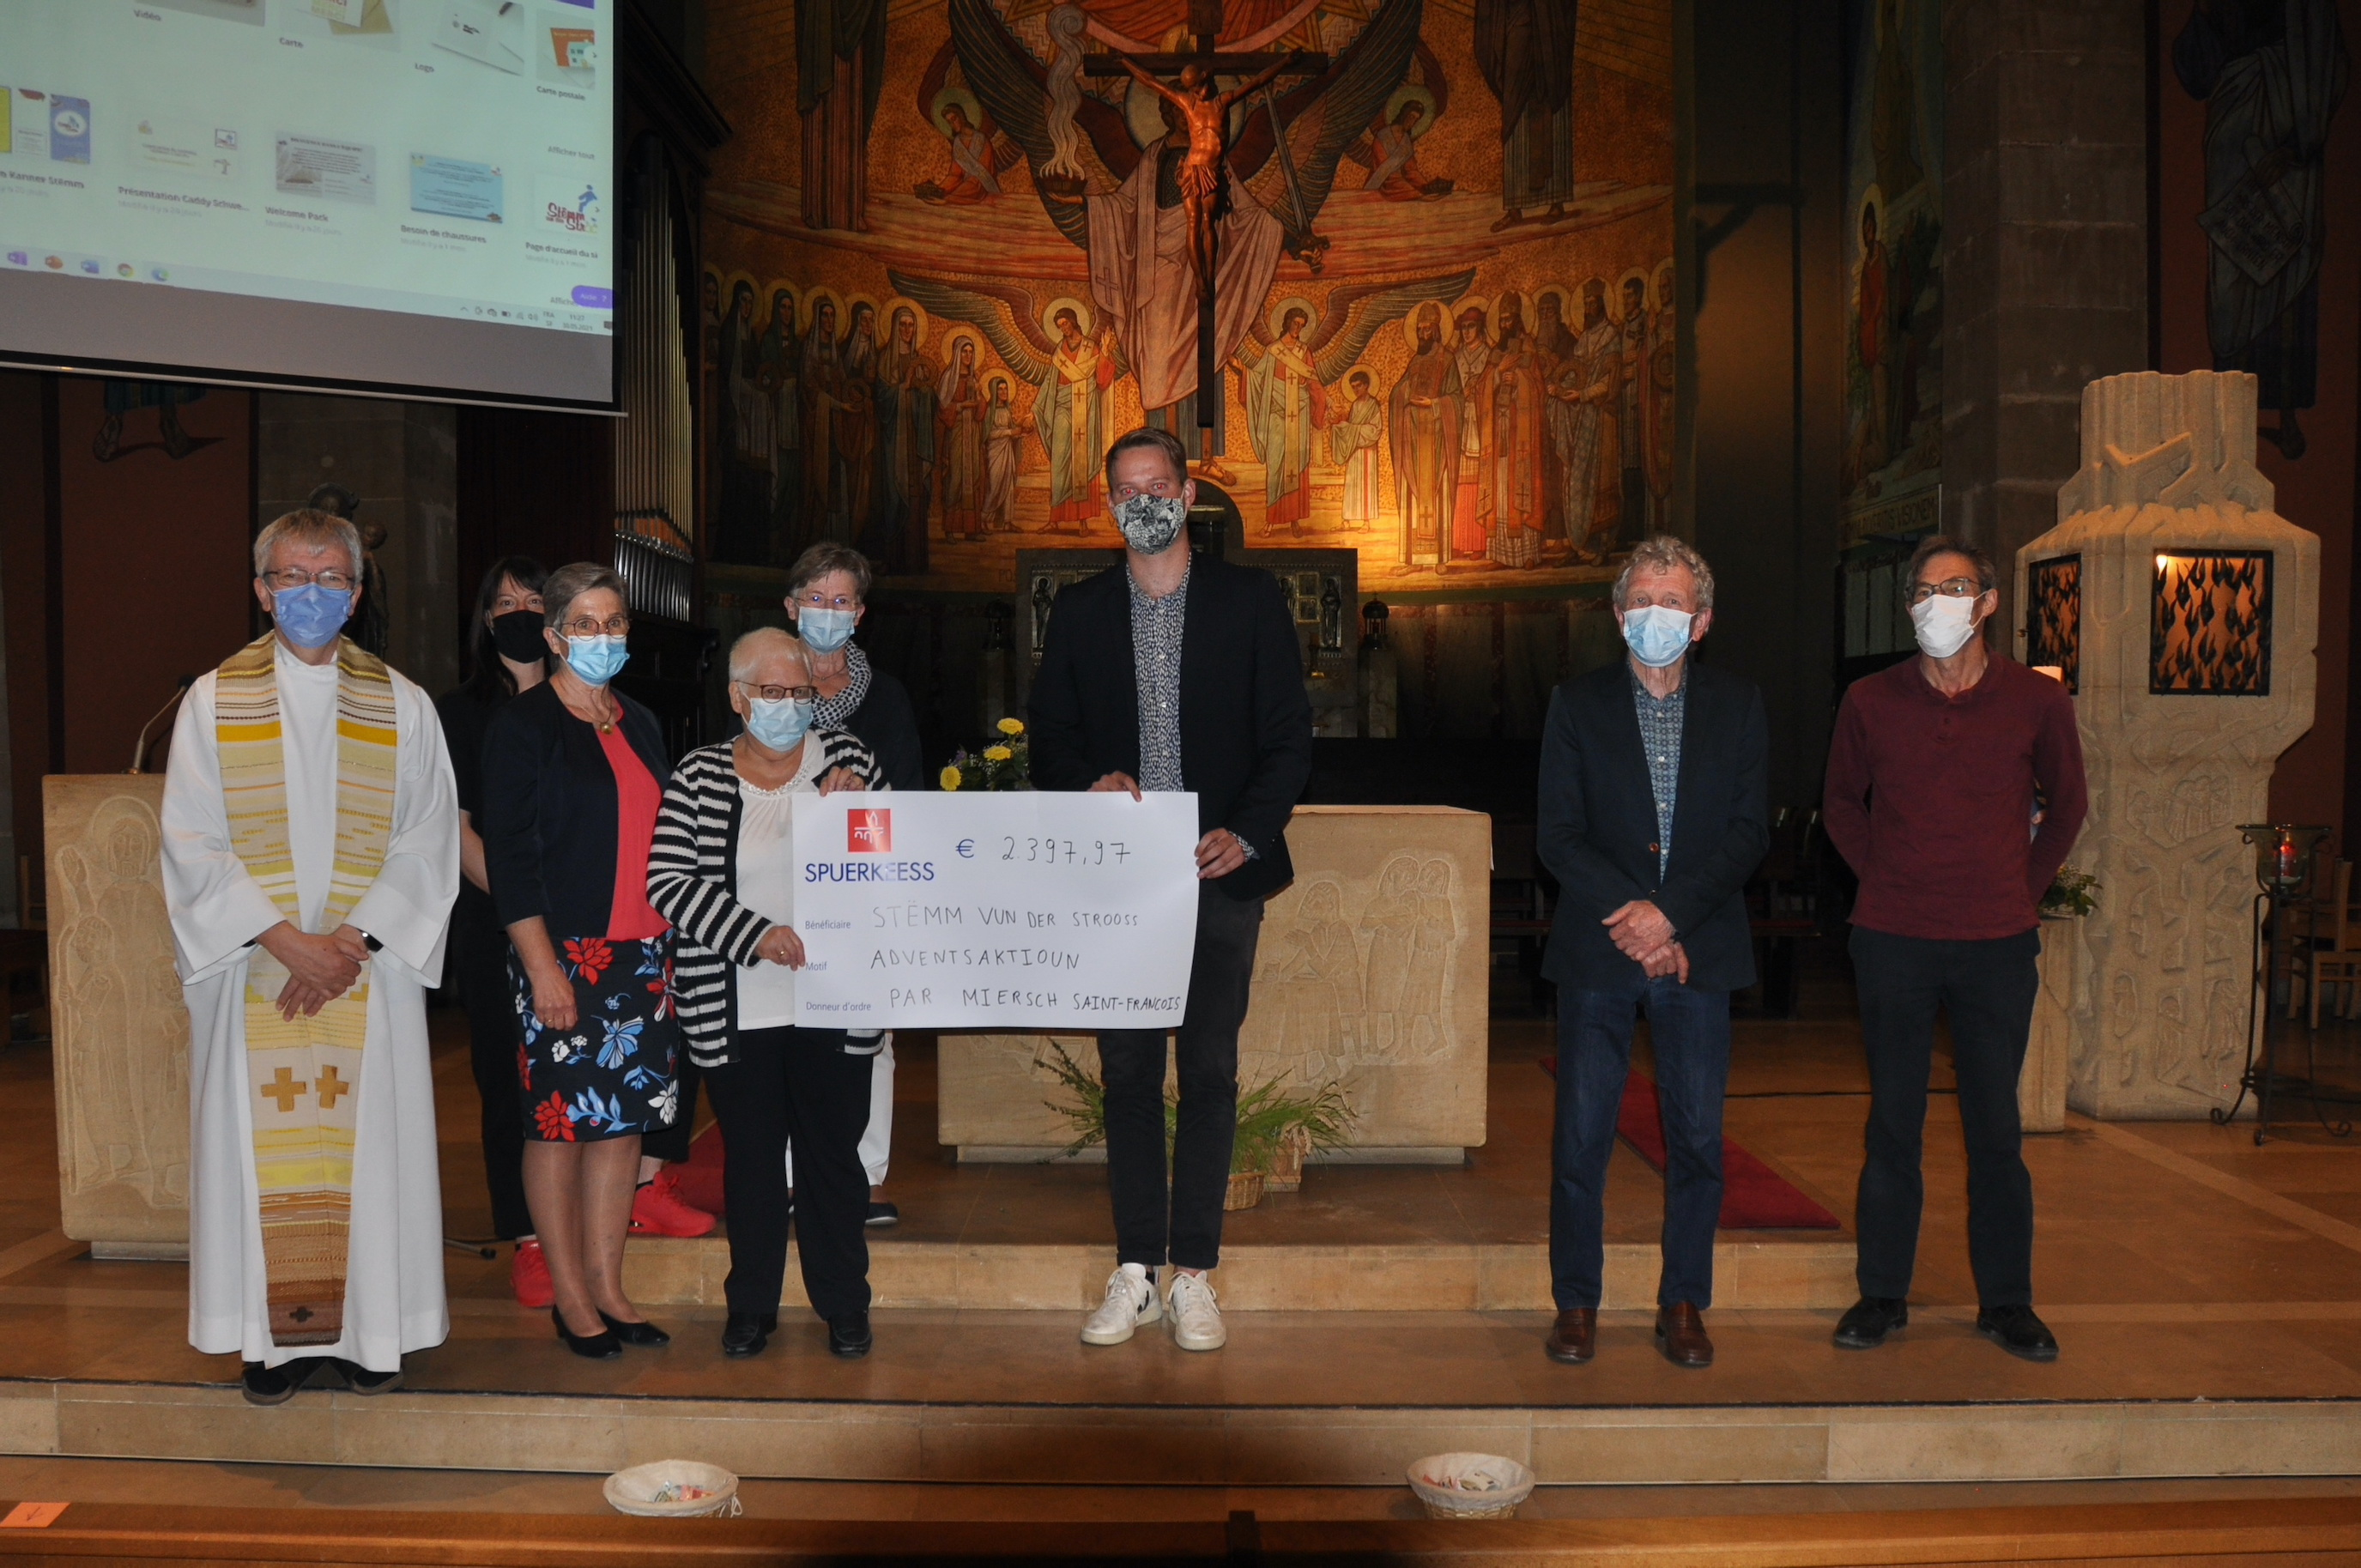 The Christmas action of the parish of Mersch allows the Stëmm vun der Strooss to fight against food waste